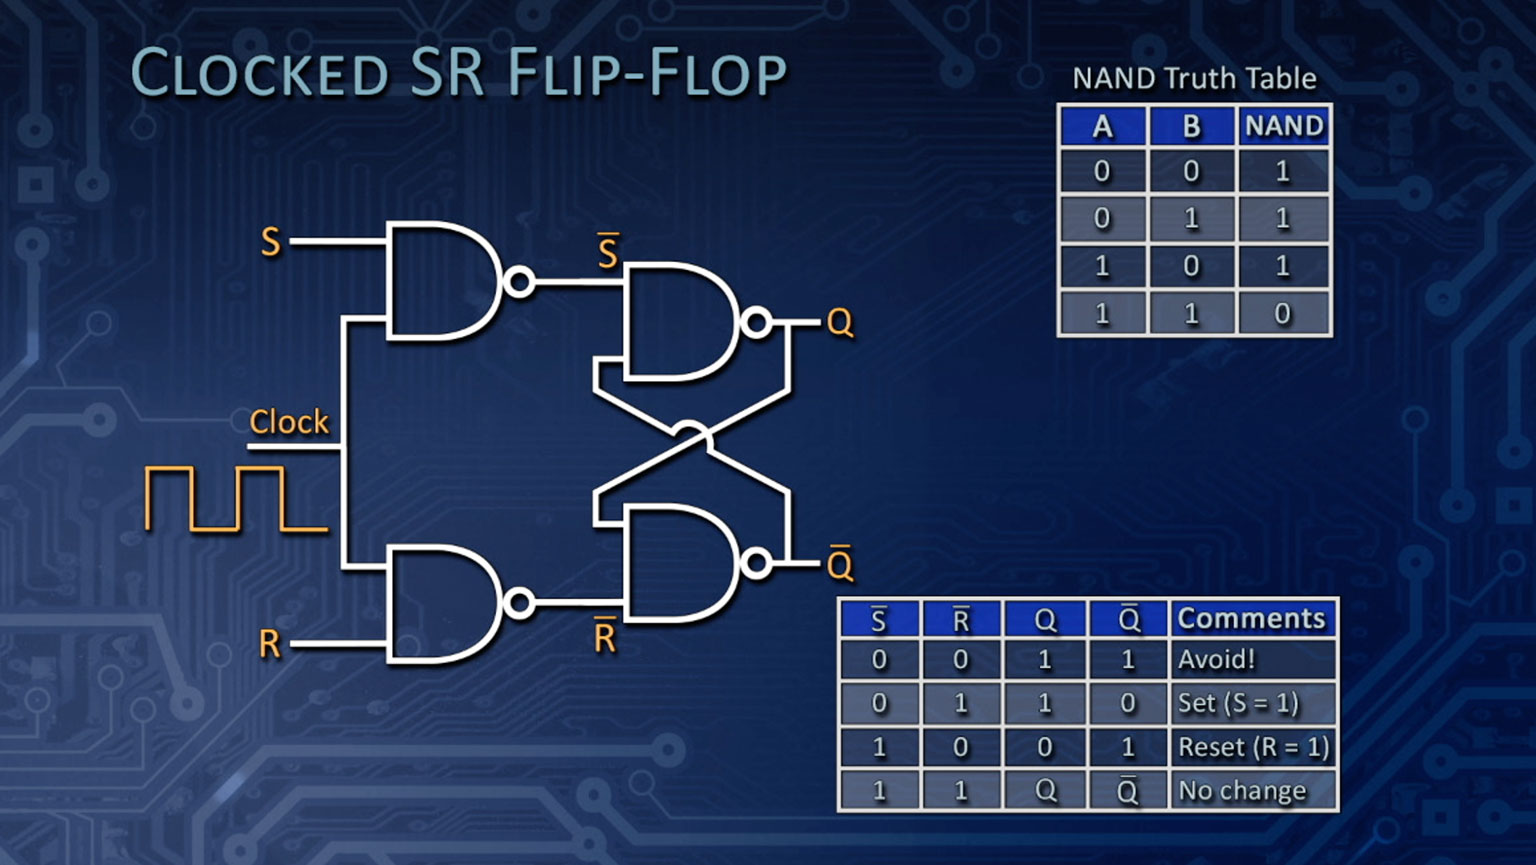 Flip Flop Circuits The Great Courses Plus Nand Gate Circuit Diagram On Dflip